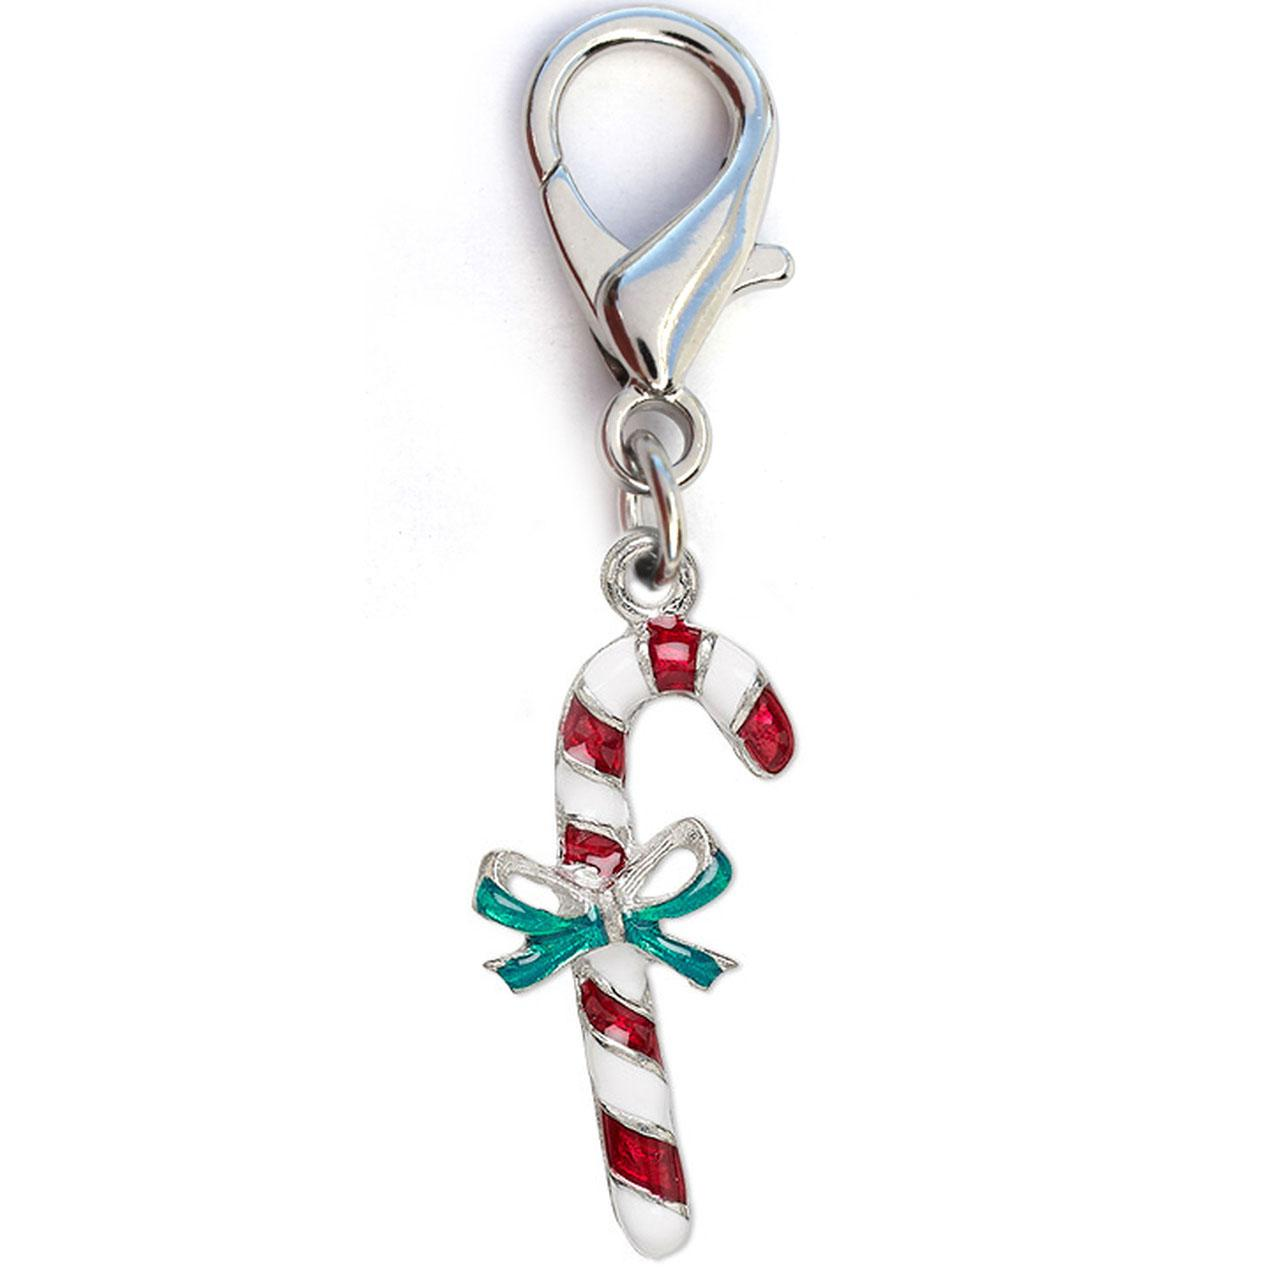 Christmas Candy Cane Dog Collar Charm by Diva Dog - Silver